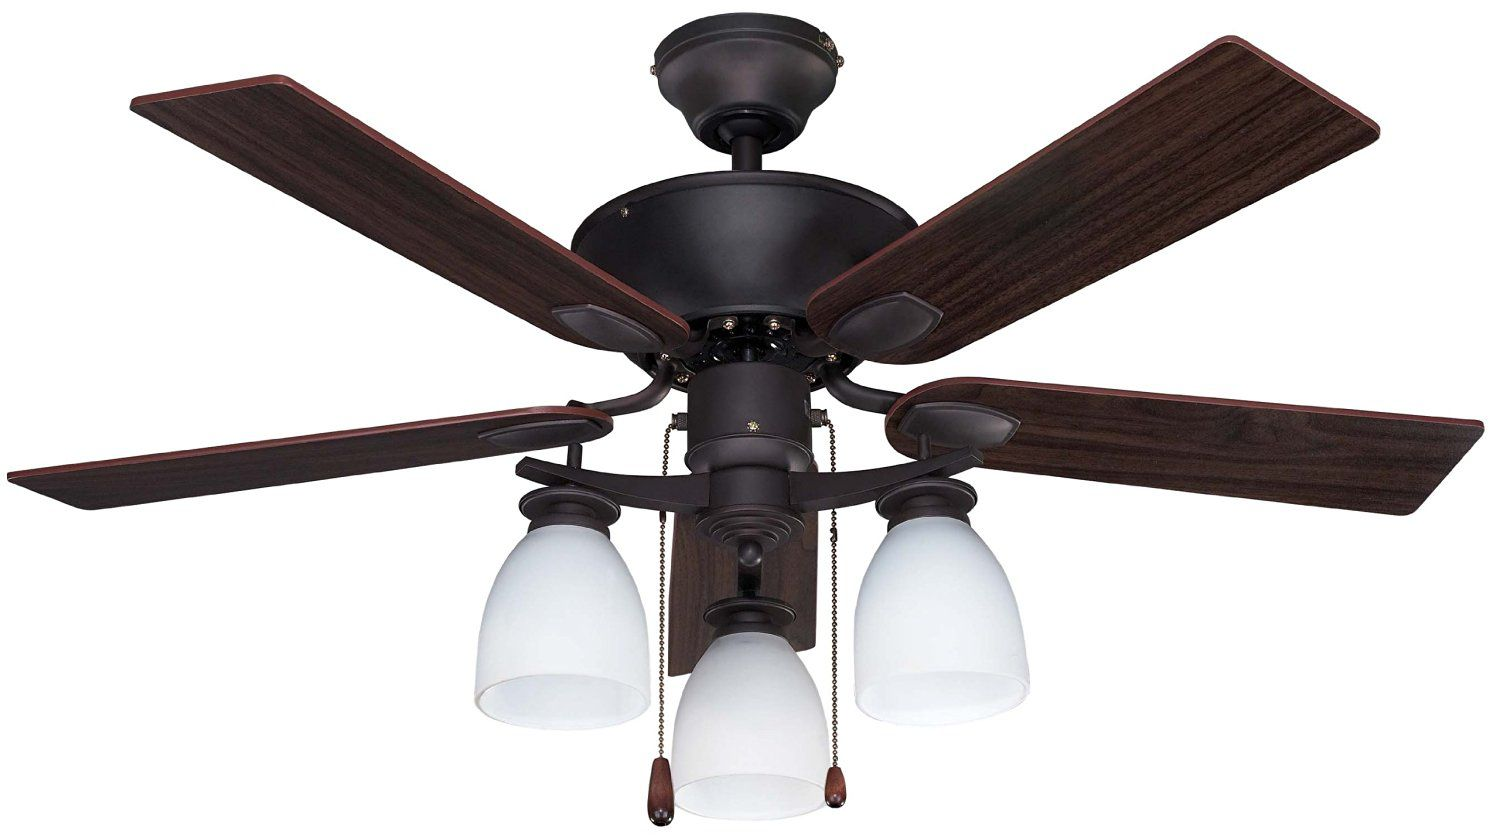 Canarm CF42NEW5ORB New Yorker Dual Mount 42-Inch Ceiling Fan with Flat Opal Light Kit and 5 Reversible Blades, Oil Rubbed Bronze